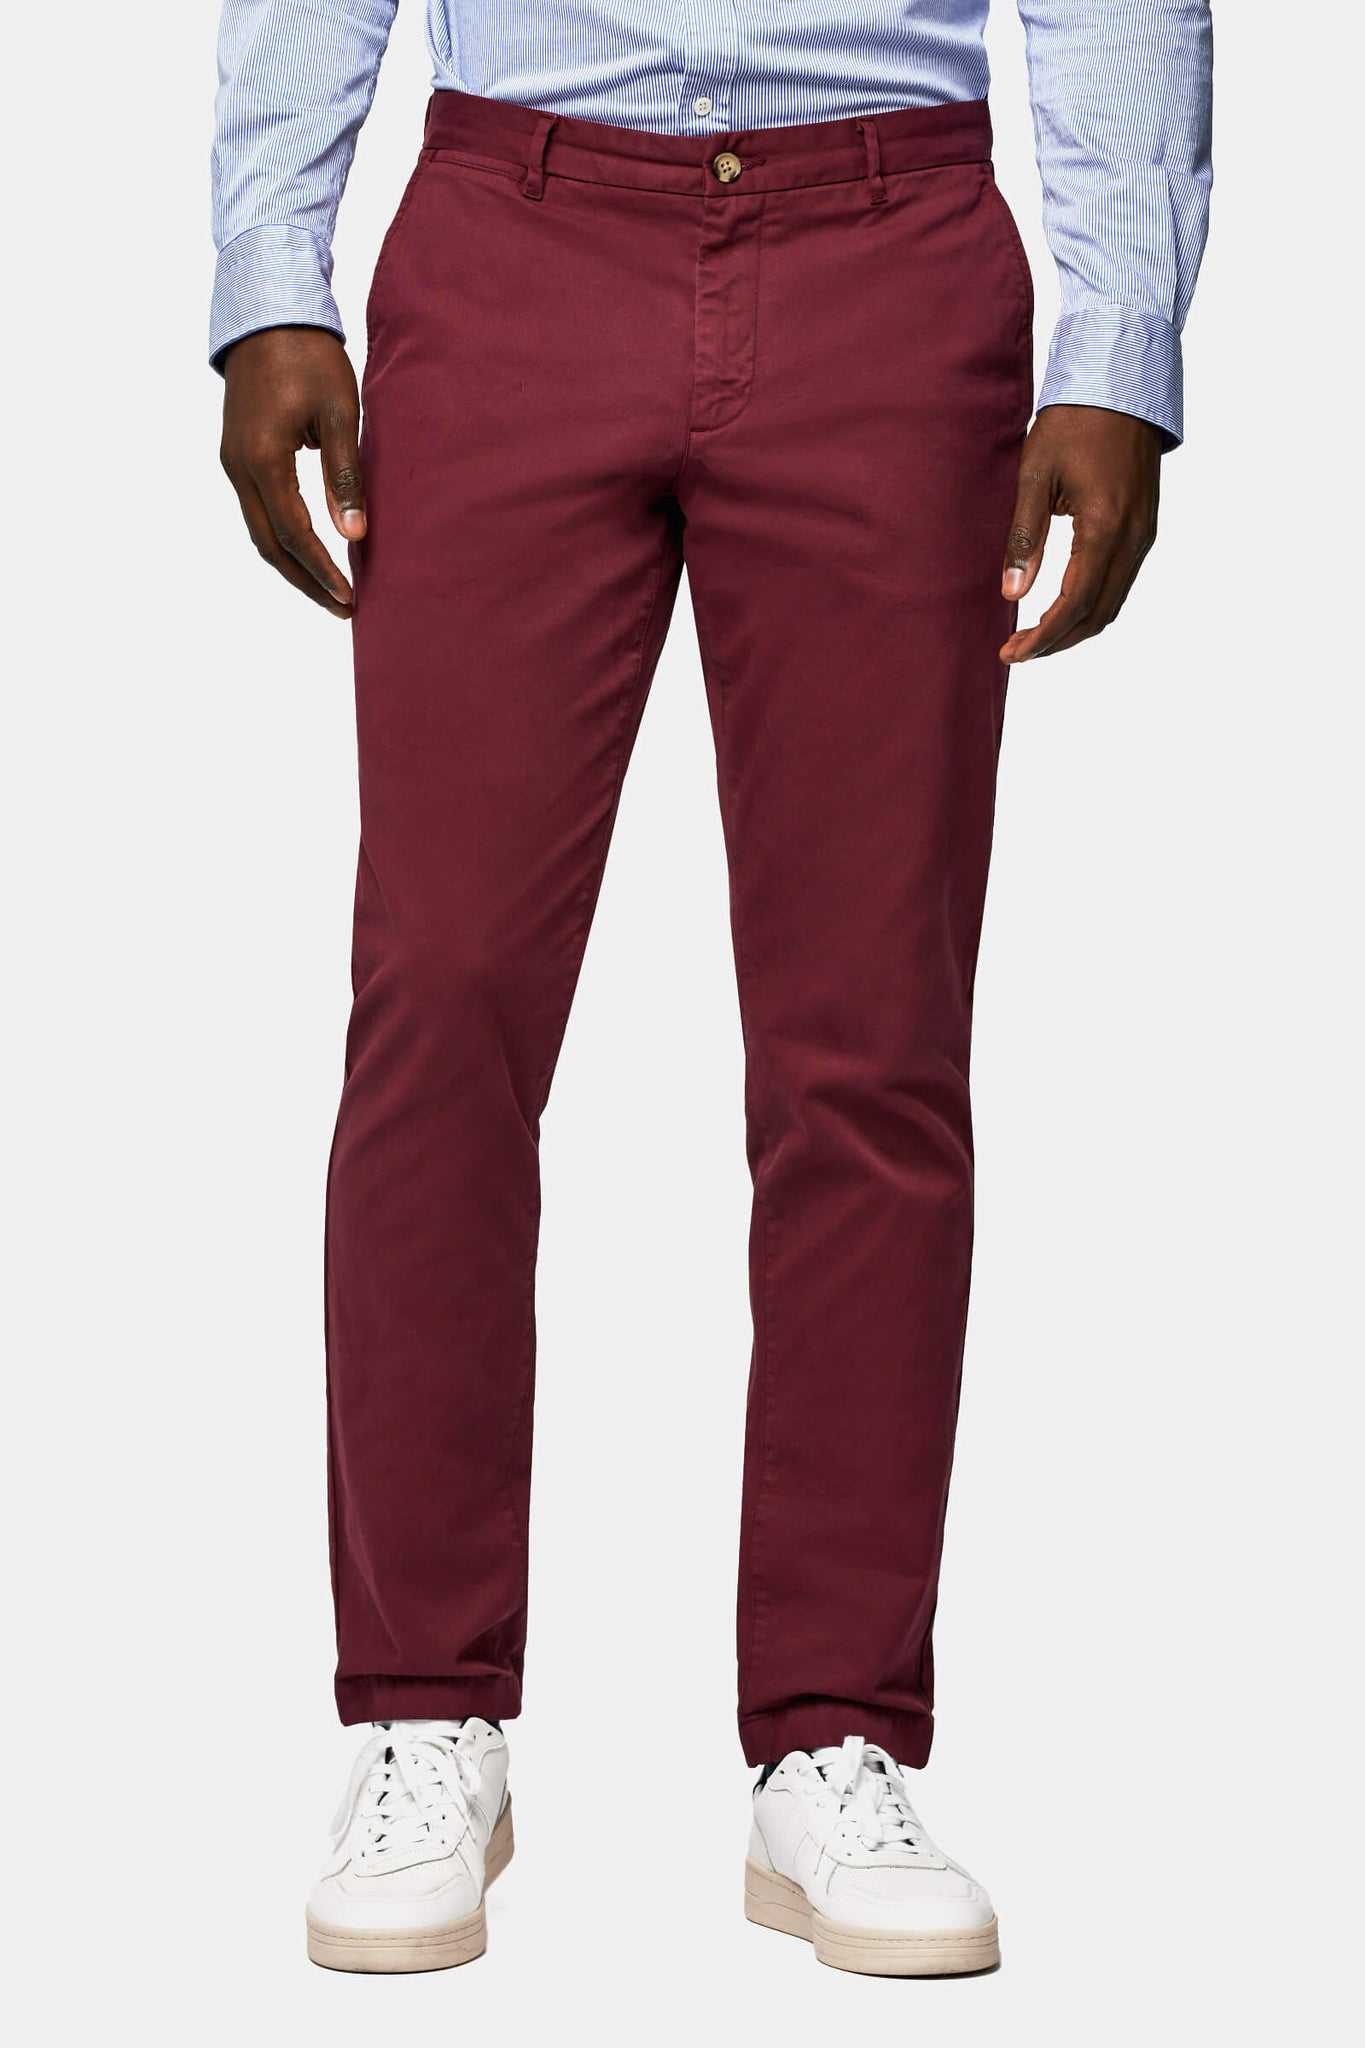 Garment dye regular fit chino